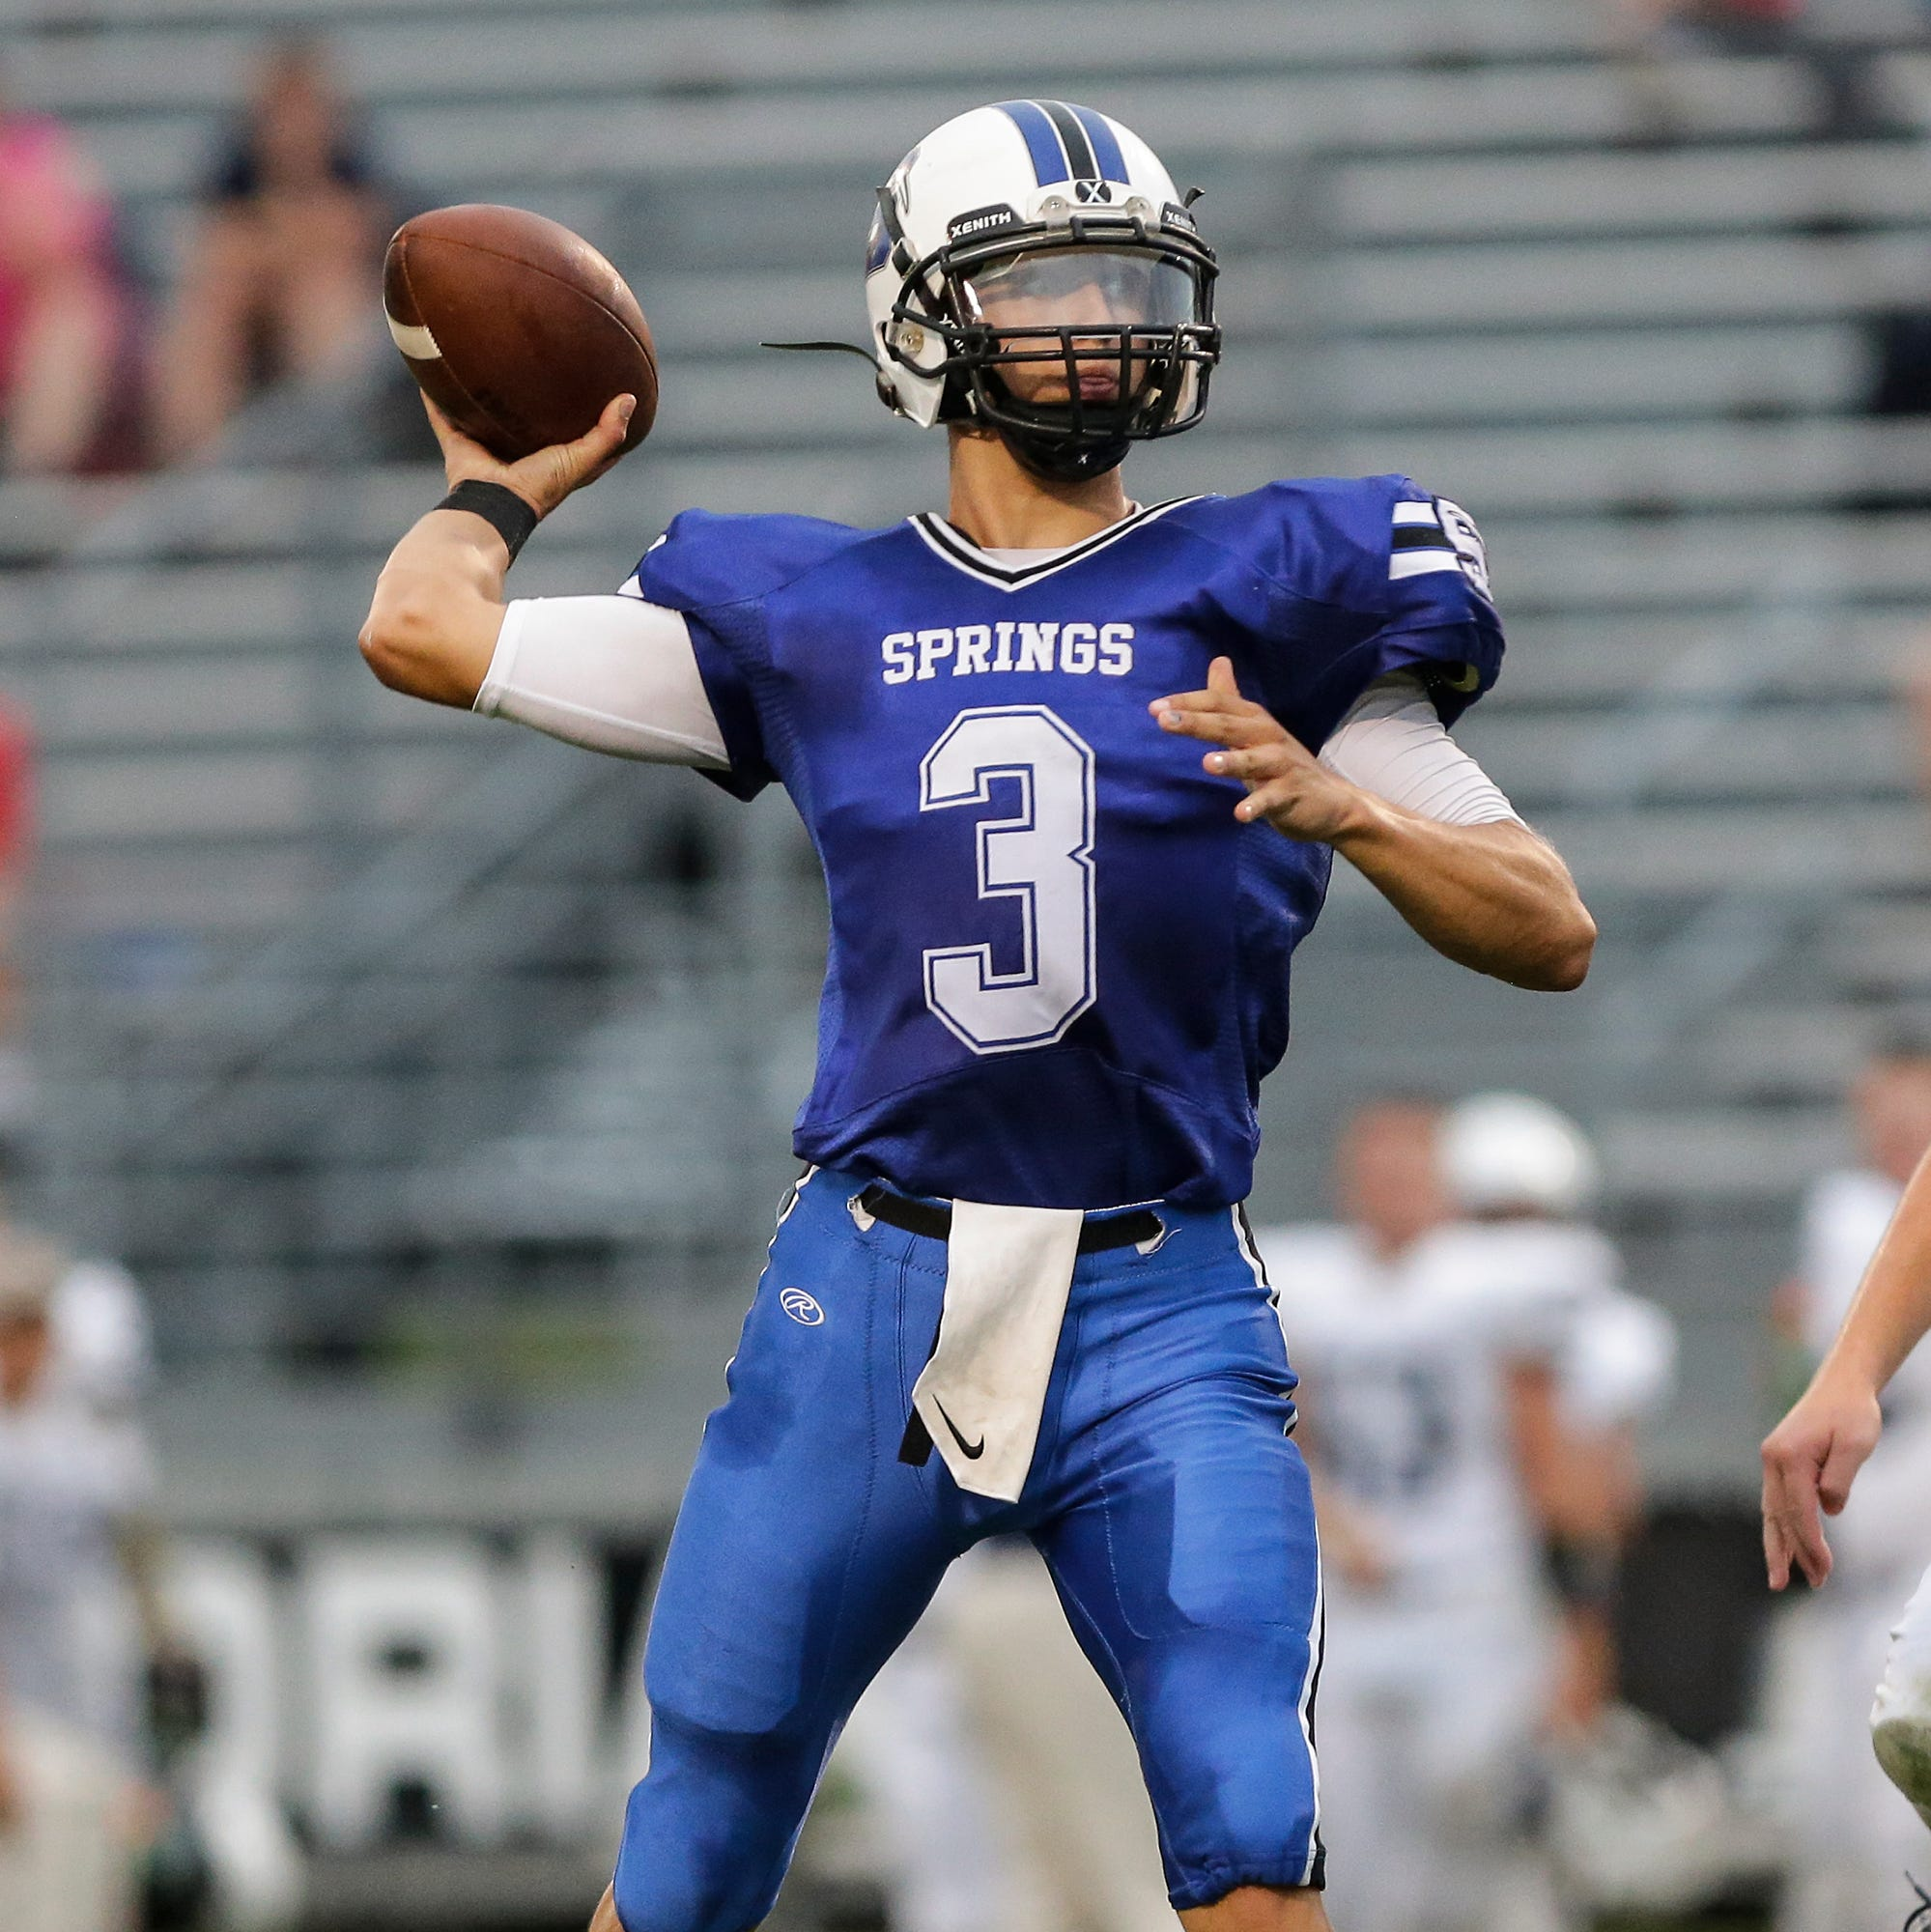 Top performers: Waechter has big night on offense, defense to lead Springs